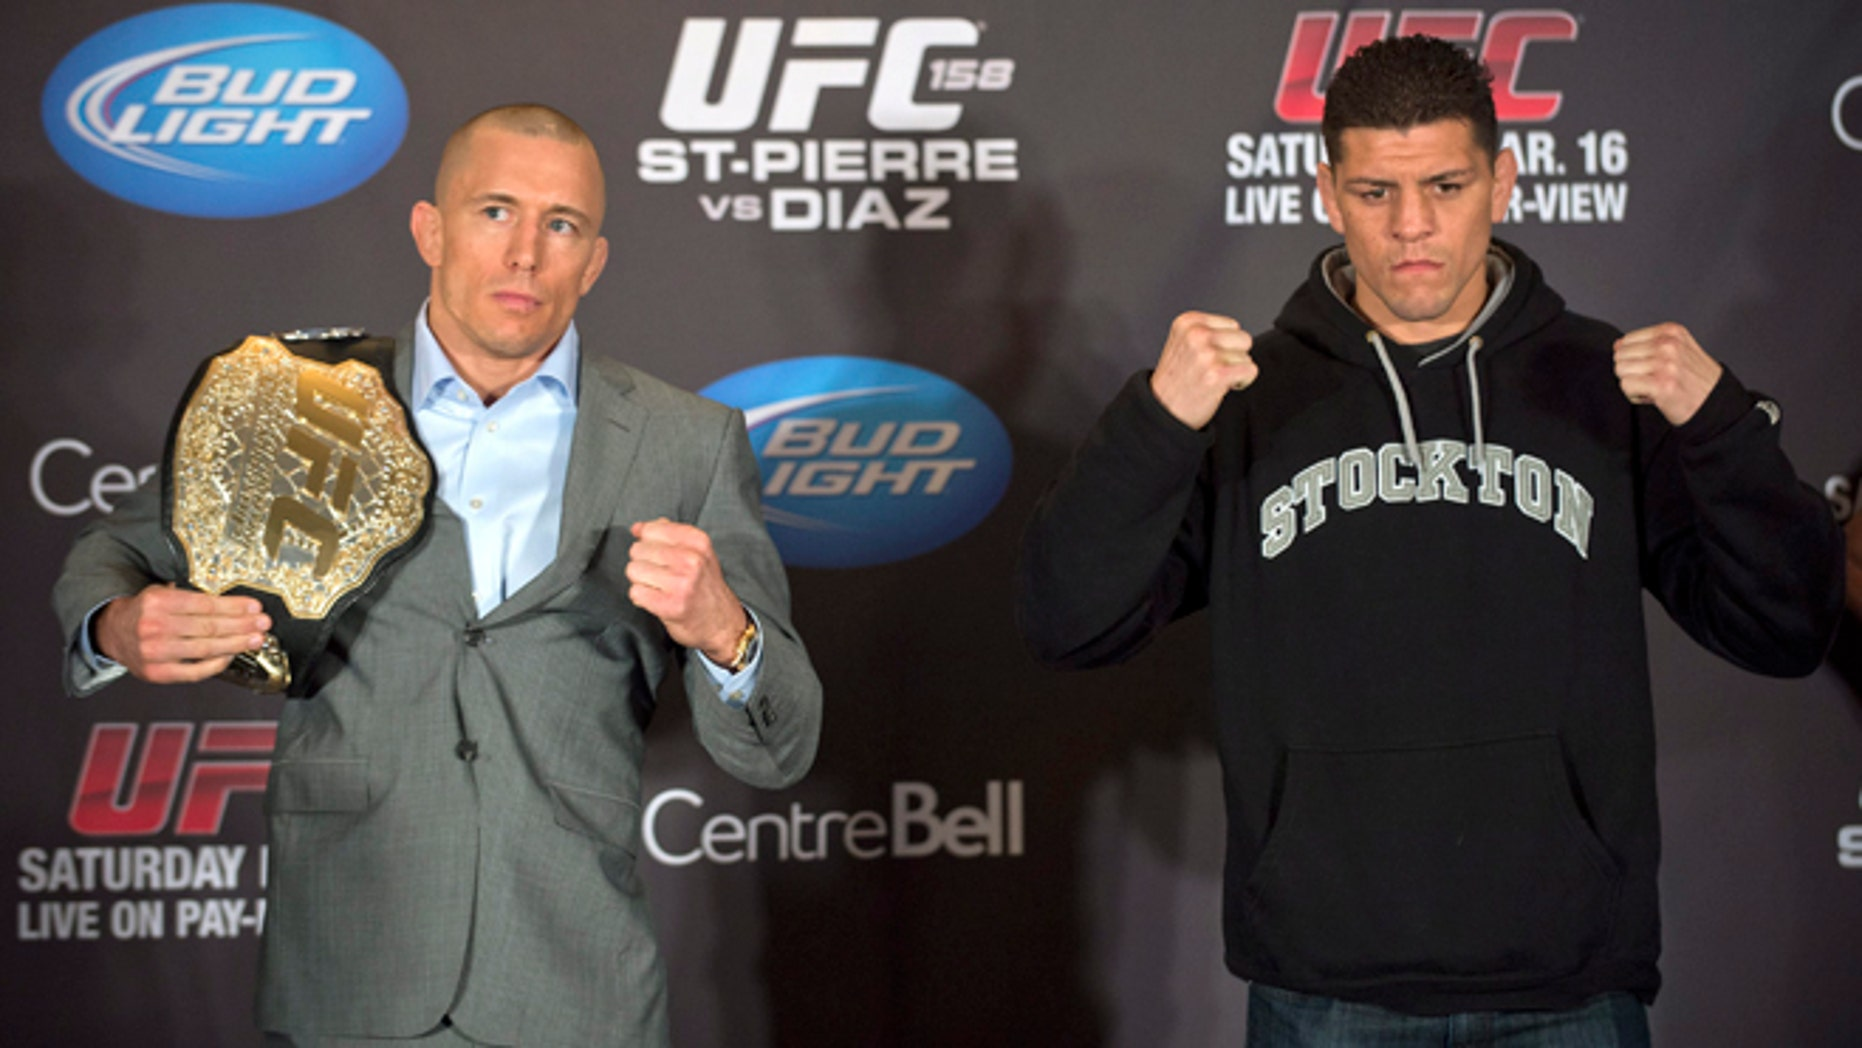 Mixed Martial Arts fighters Georges St-Pierre, left, and Nick Diaz pose for the media following their news conference in Montreal, Thursday, March 14, 2013. The pair will meet in a UFC 158 title fight in Montreal on Saturday. (AP Photo/The Canadian Press, Graham Hughes)